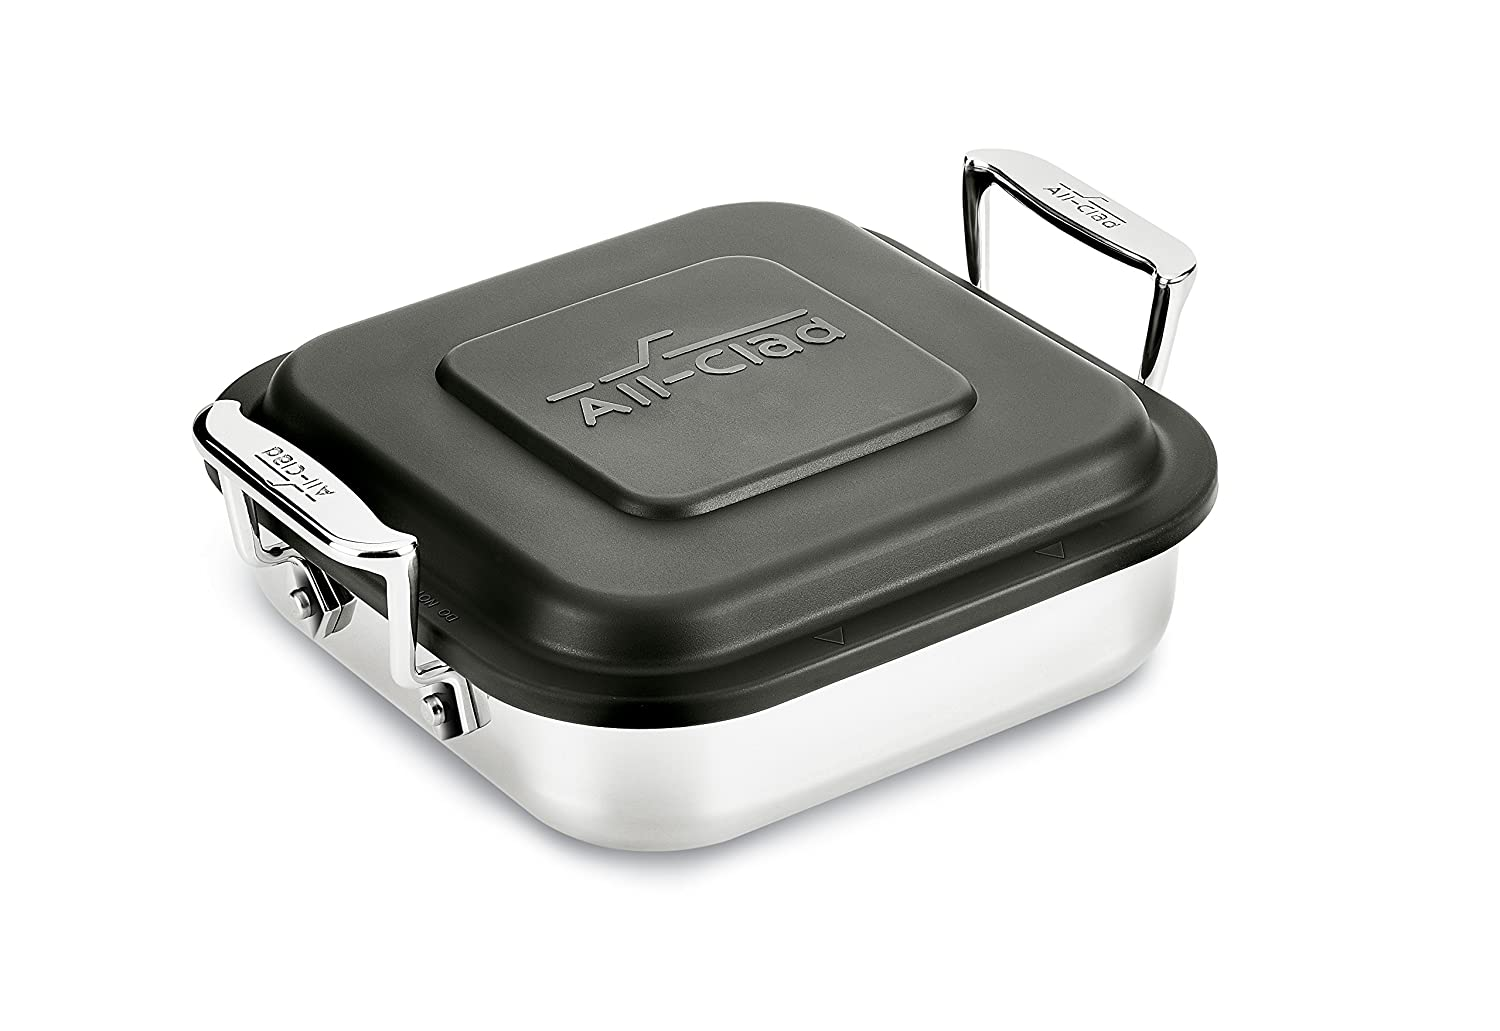 All-Clad E9019464 Gourmet Accessories Stainless Steel Square Baker w/lid cookware, 8-Inch, Silver 2100100835